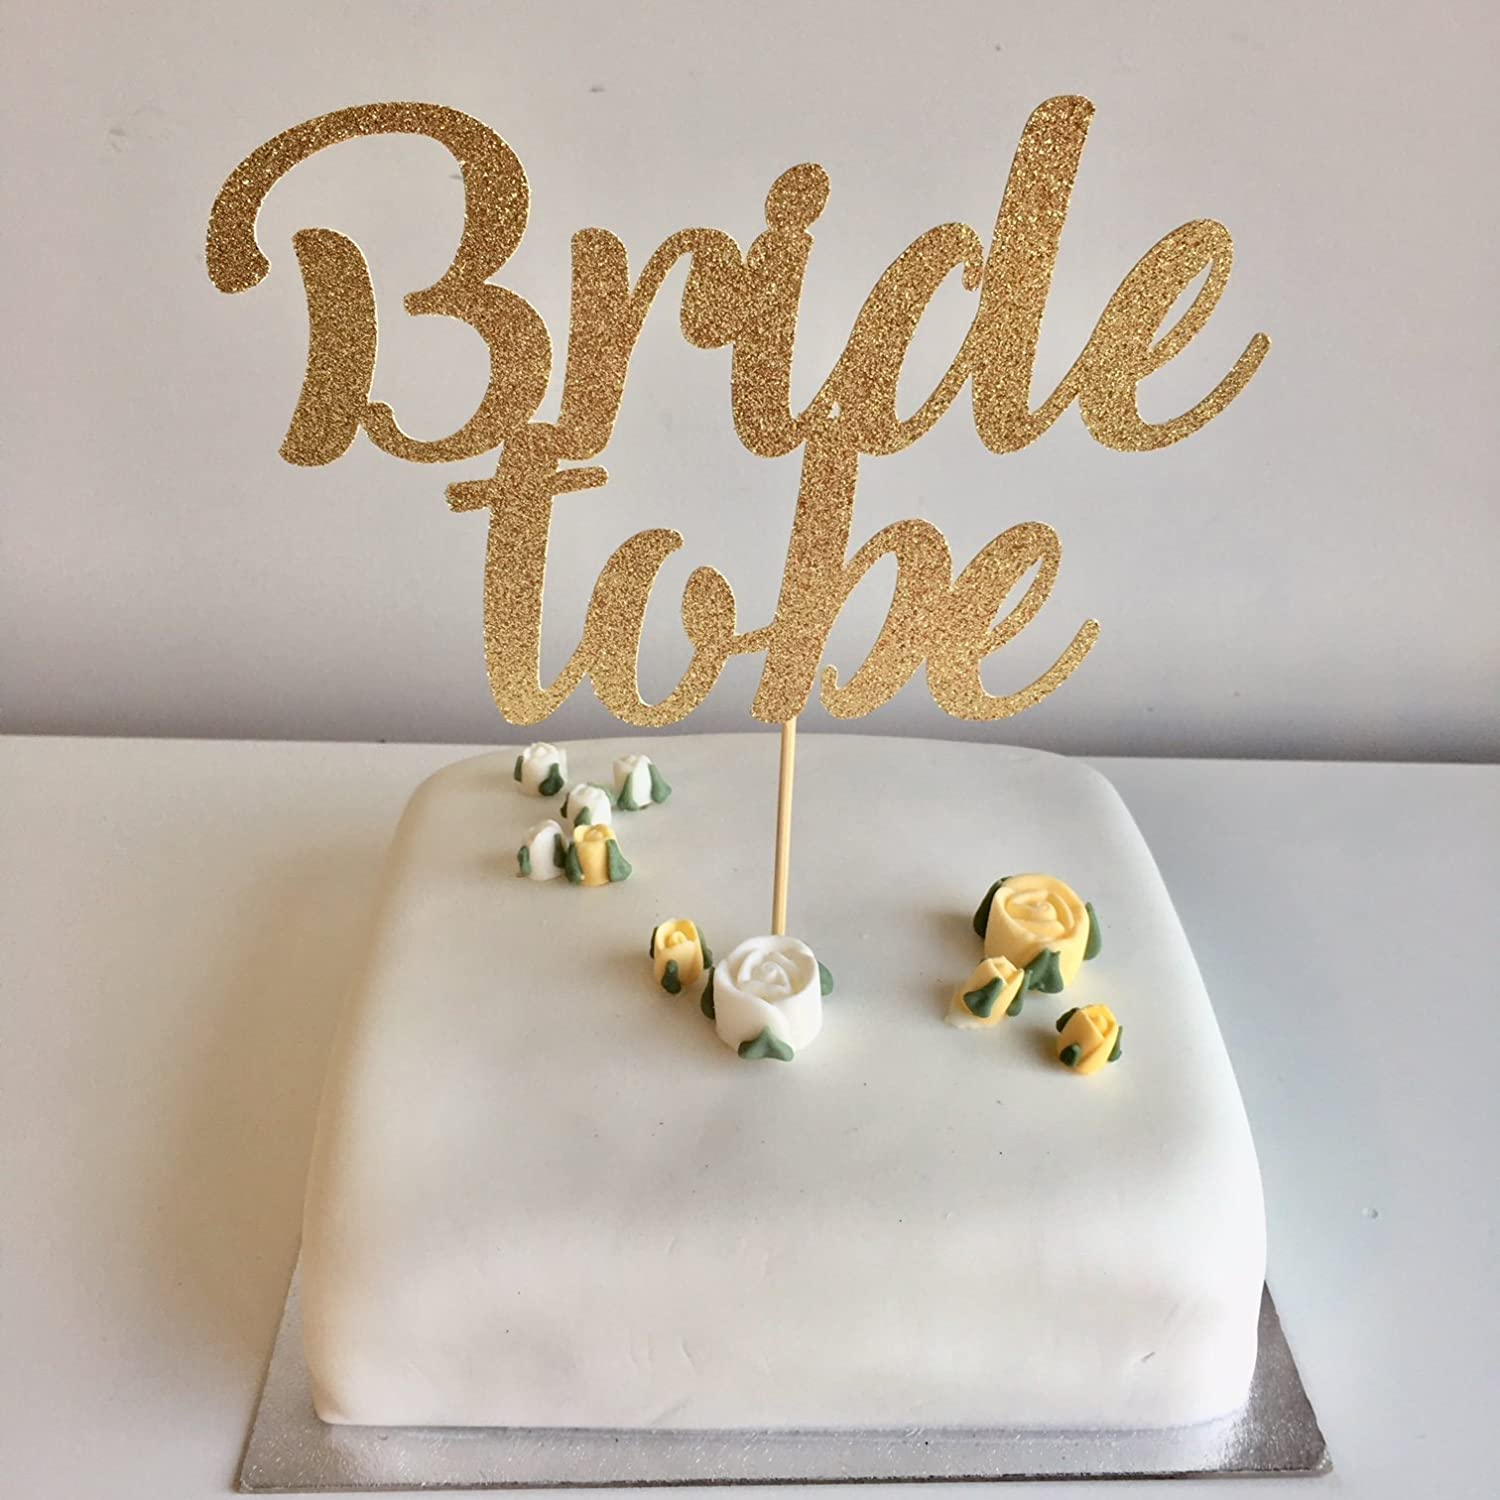 Script party cake Cake topper for bachelorette parties. Bridal shower cake decor Bride to be cake topper Hen Party cake topper